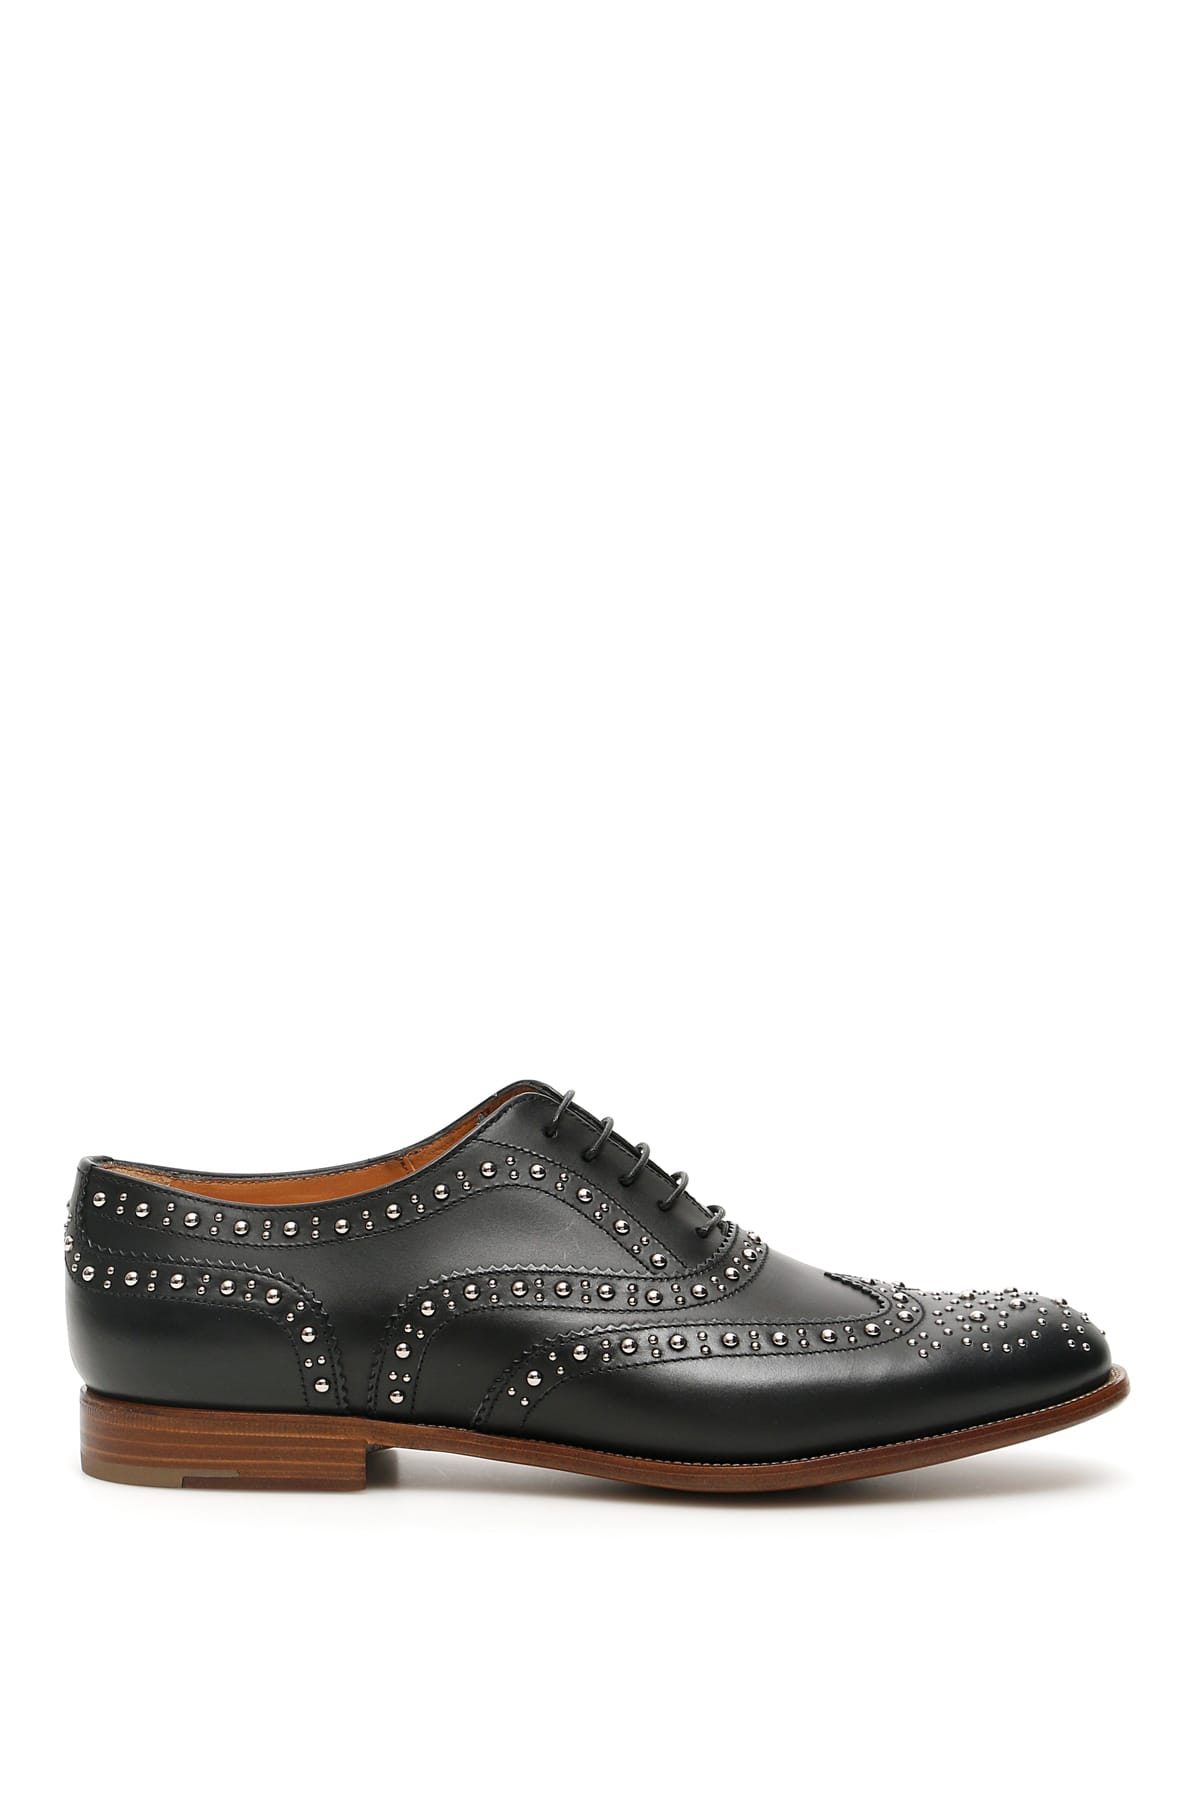 Church's BURWOOD 7 MET BROGUE SHOES